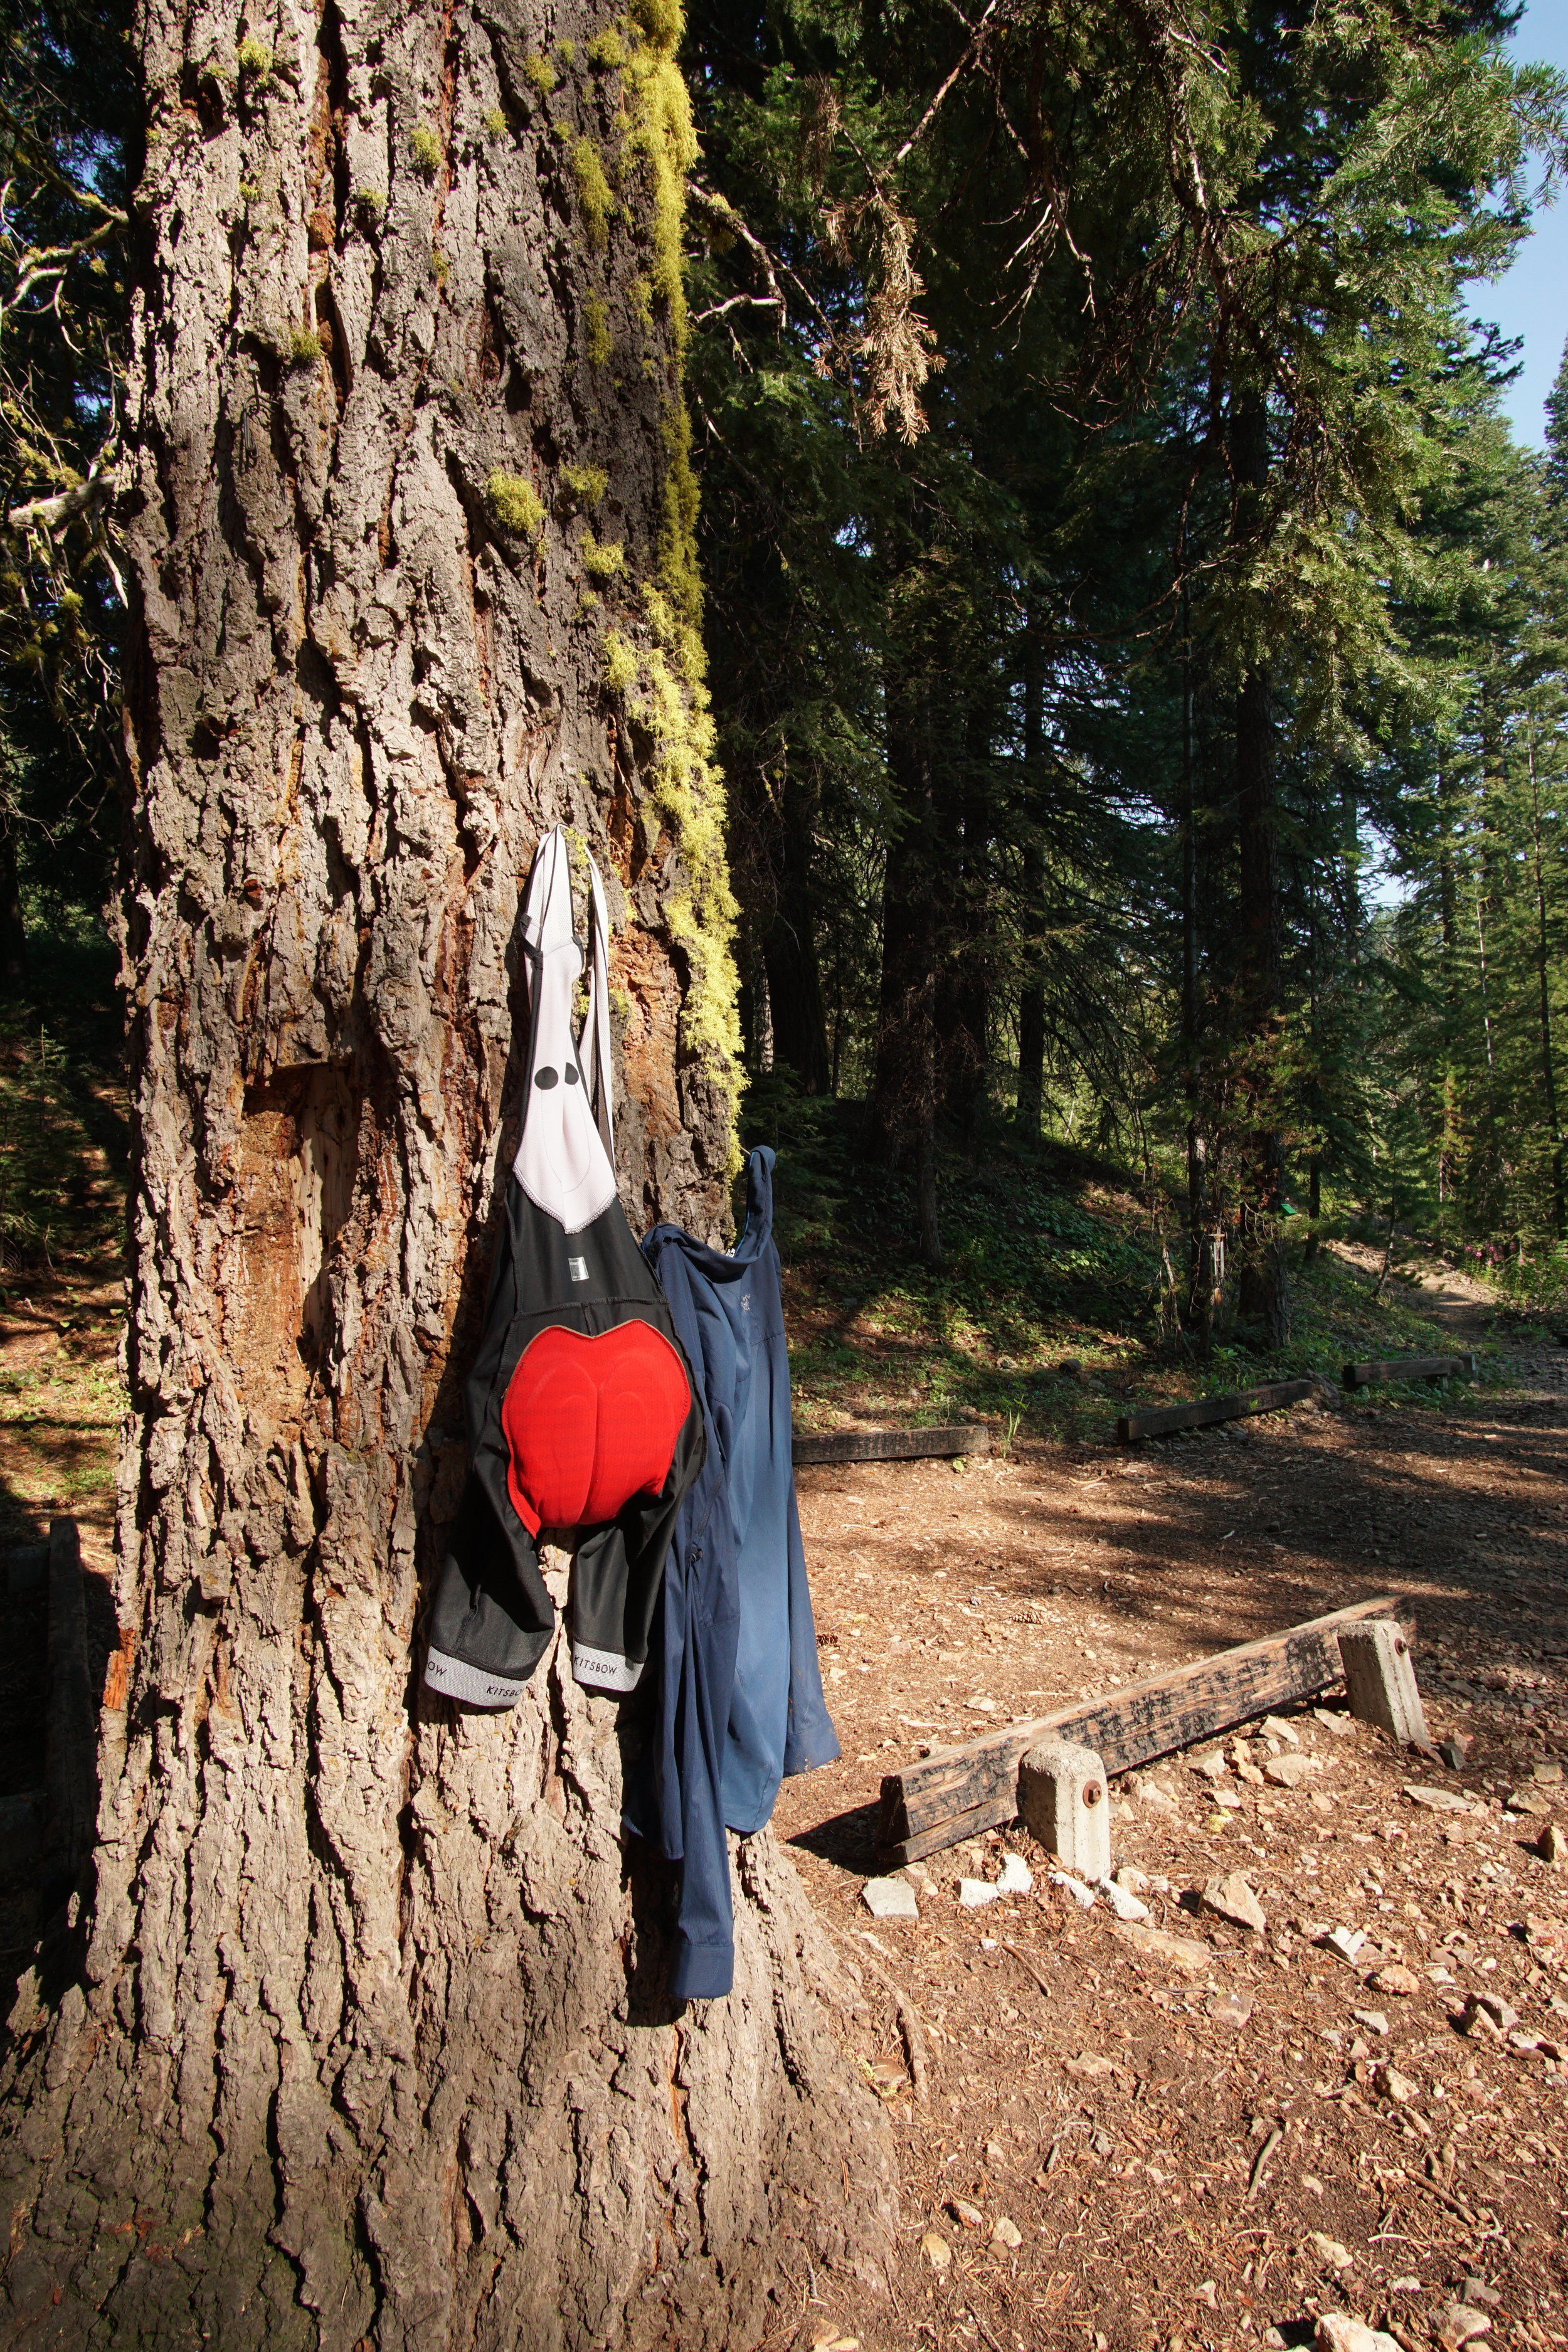 Choking down a little oatmeal and a coffee, I decided to show some discipline and stick to my plan of washing my one chamois at every opportunity. A bit of sunshine to dry things out and I was back on the trail. Starting the OTT mid-morning of day 2. -